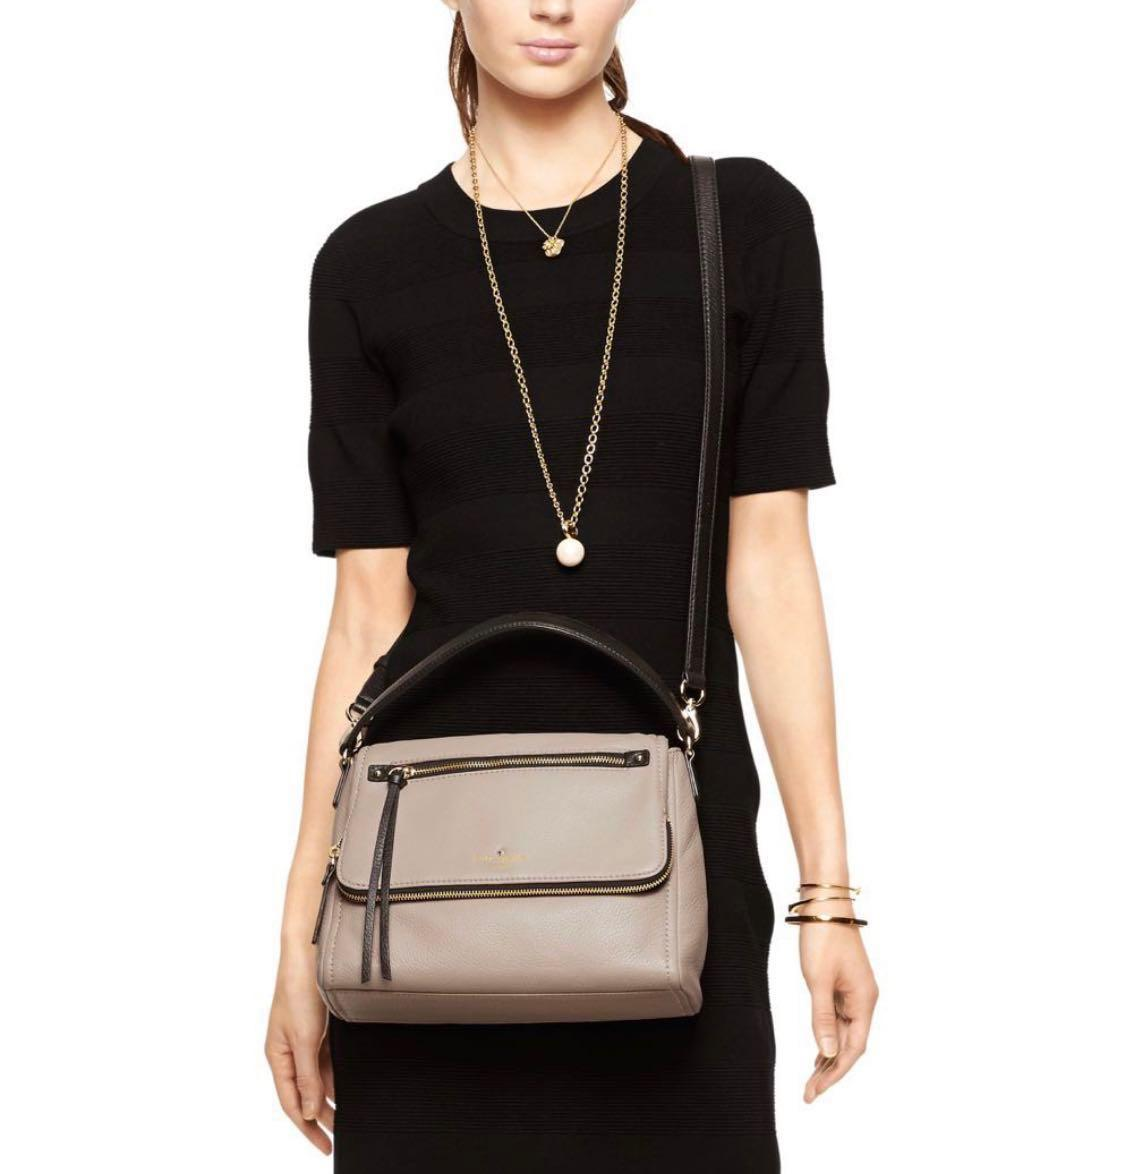 Kate Spade Cobble Hill Small Toddy Leather Shoulder Crossbody Tote Bag in Cement/Black - Like New